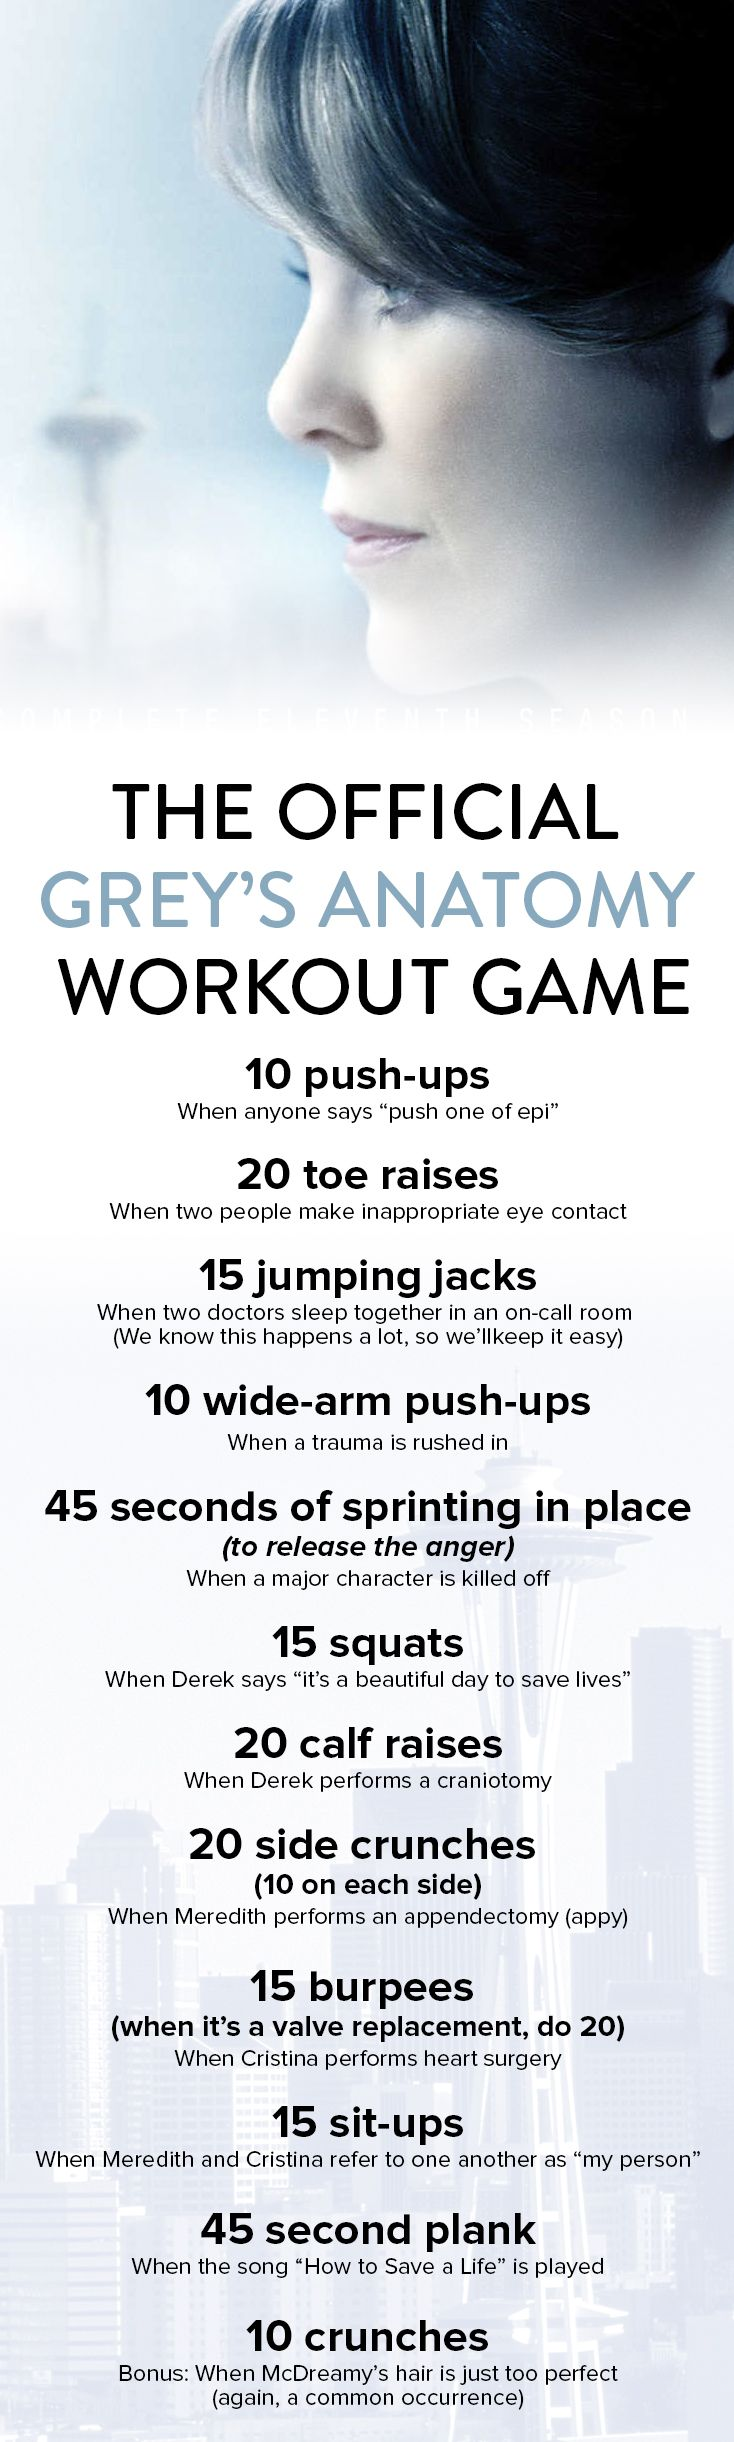 Fitness With Finesse: The Official Grey\'s Anatomy Workout Game ...